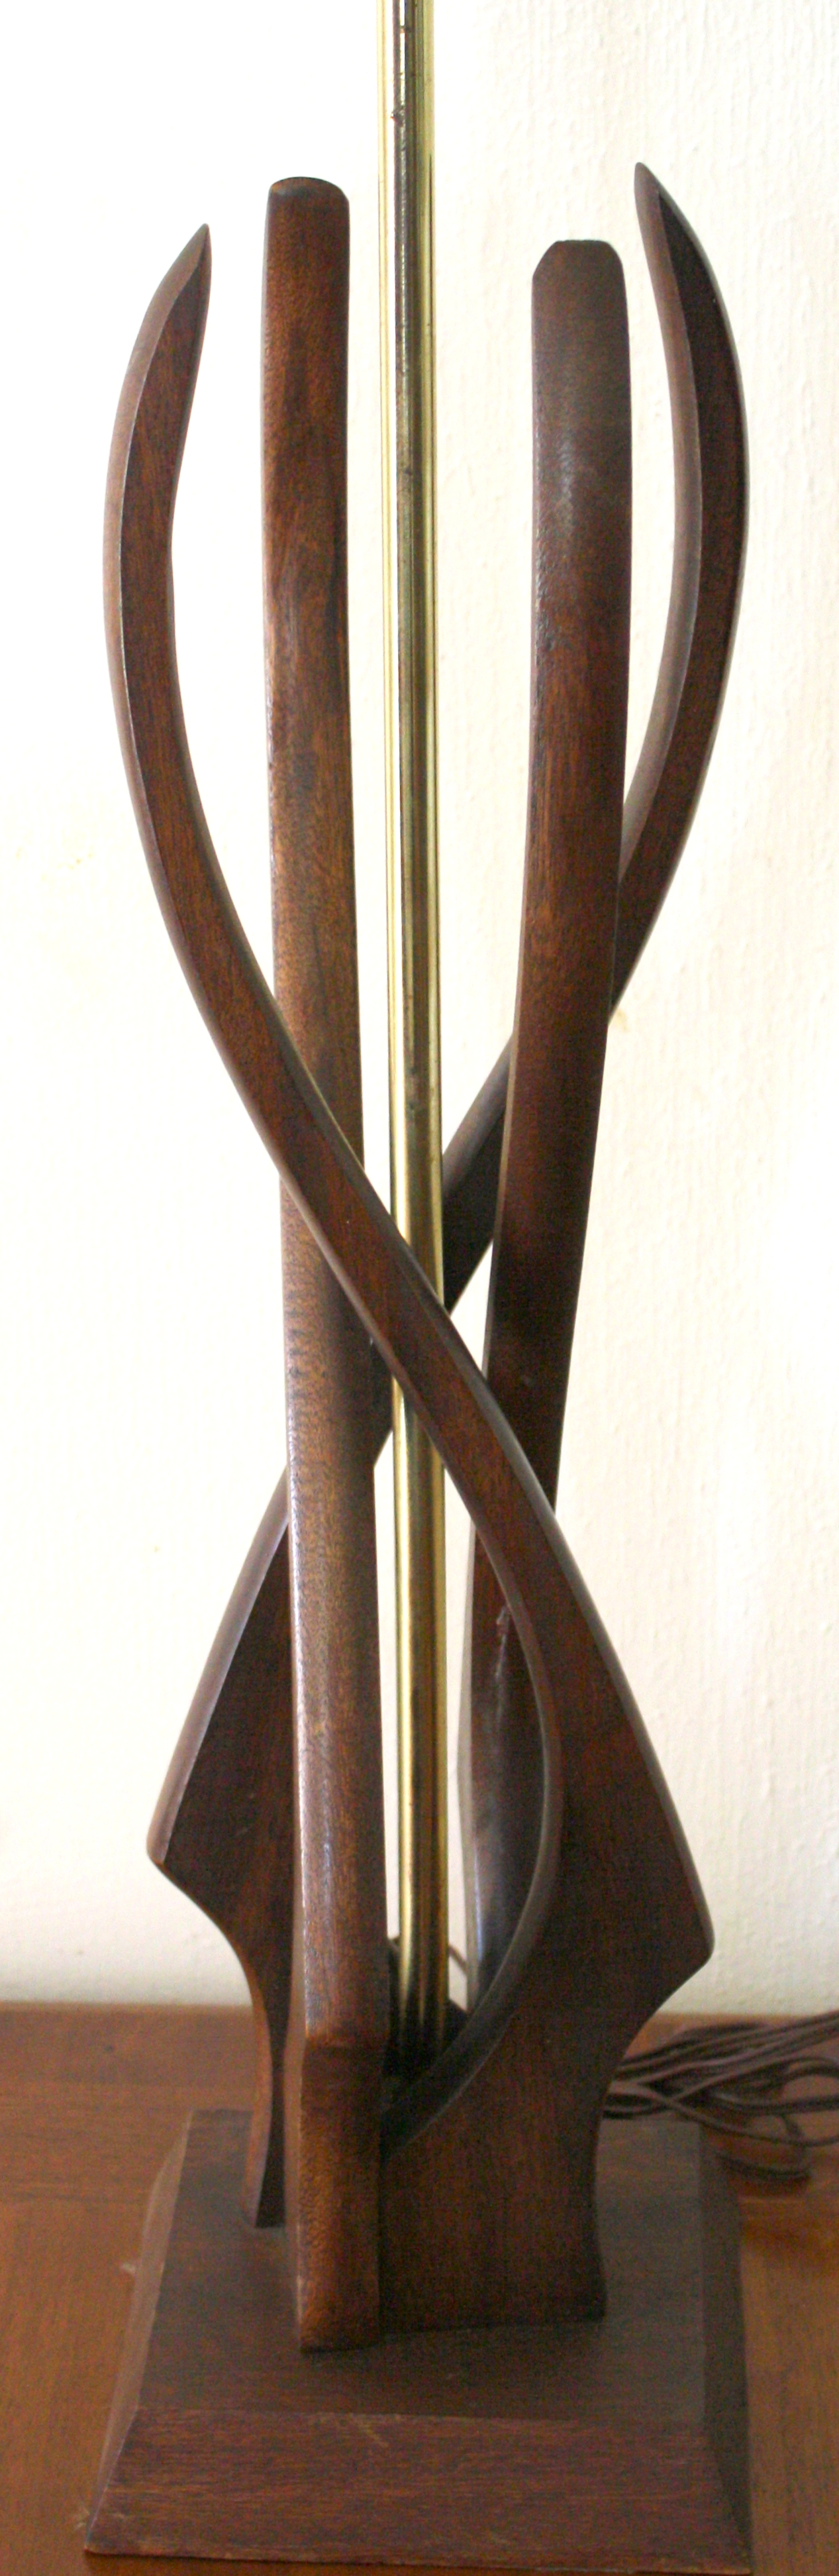 mid century modern sculptural wood lamp and tulip lamps picked